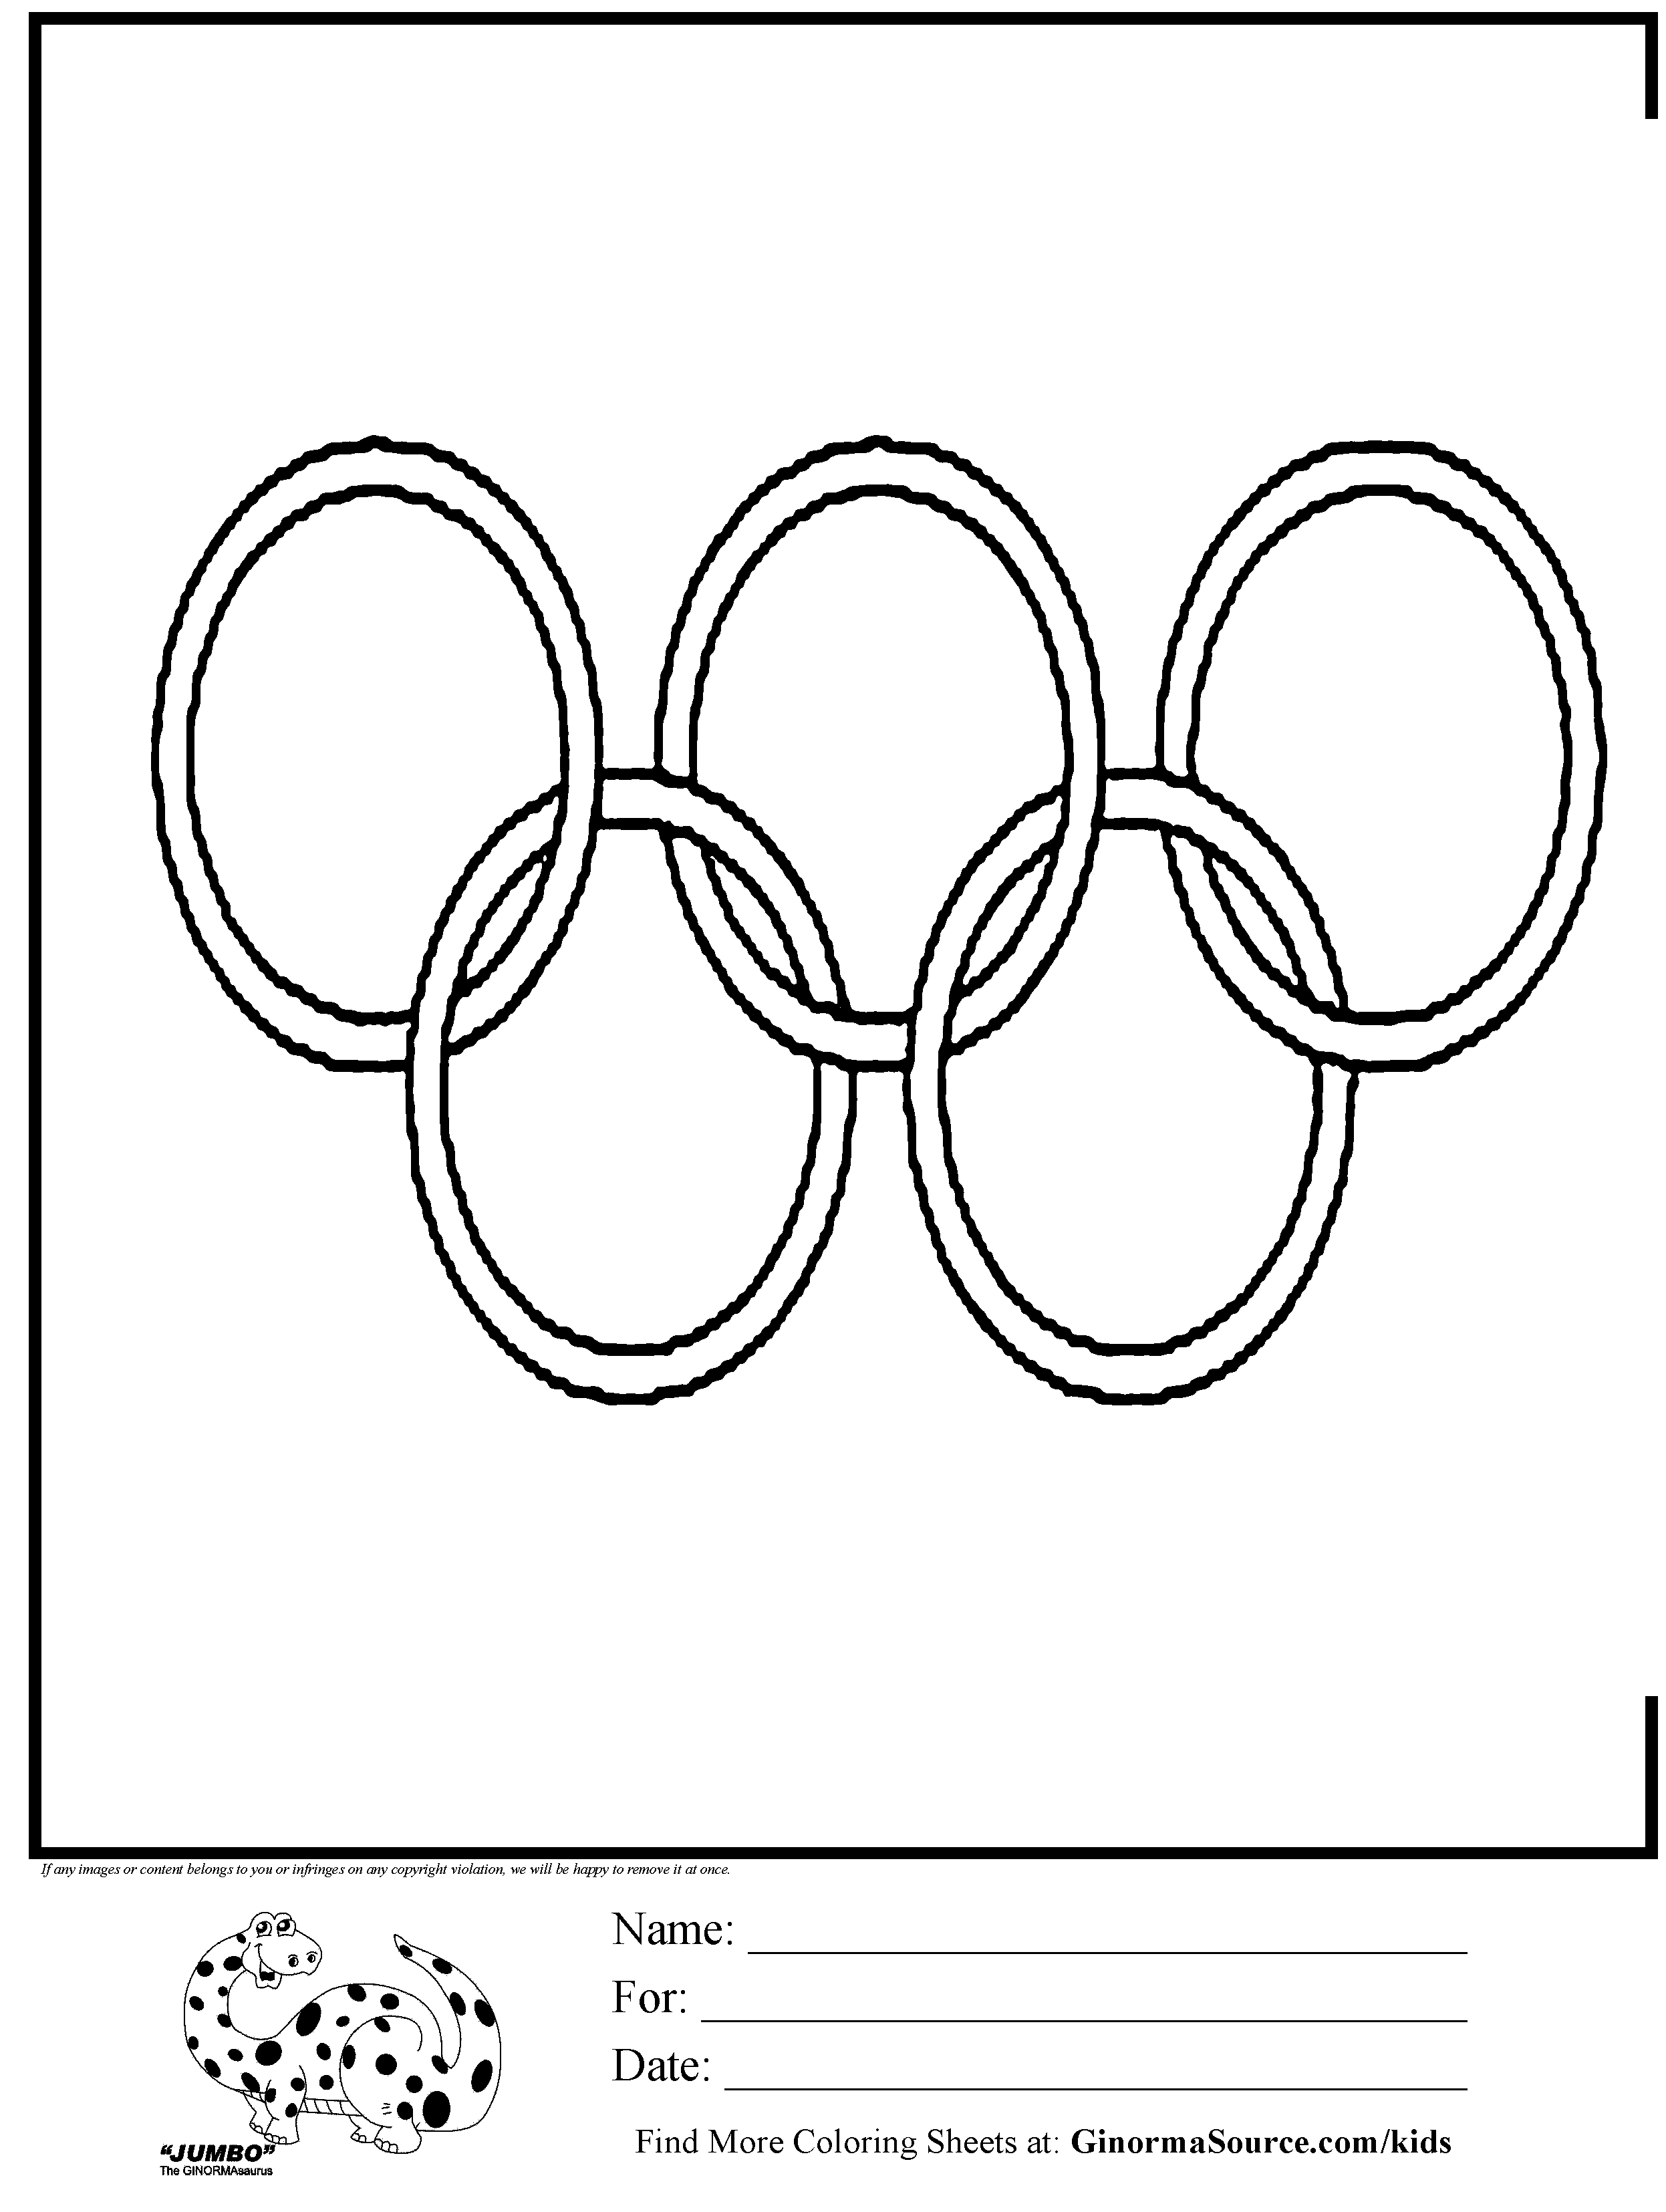 olympic rings to color olympic rings coloring page coloring home olympic rings color to